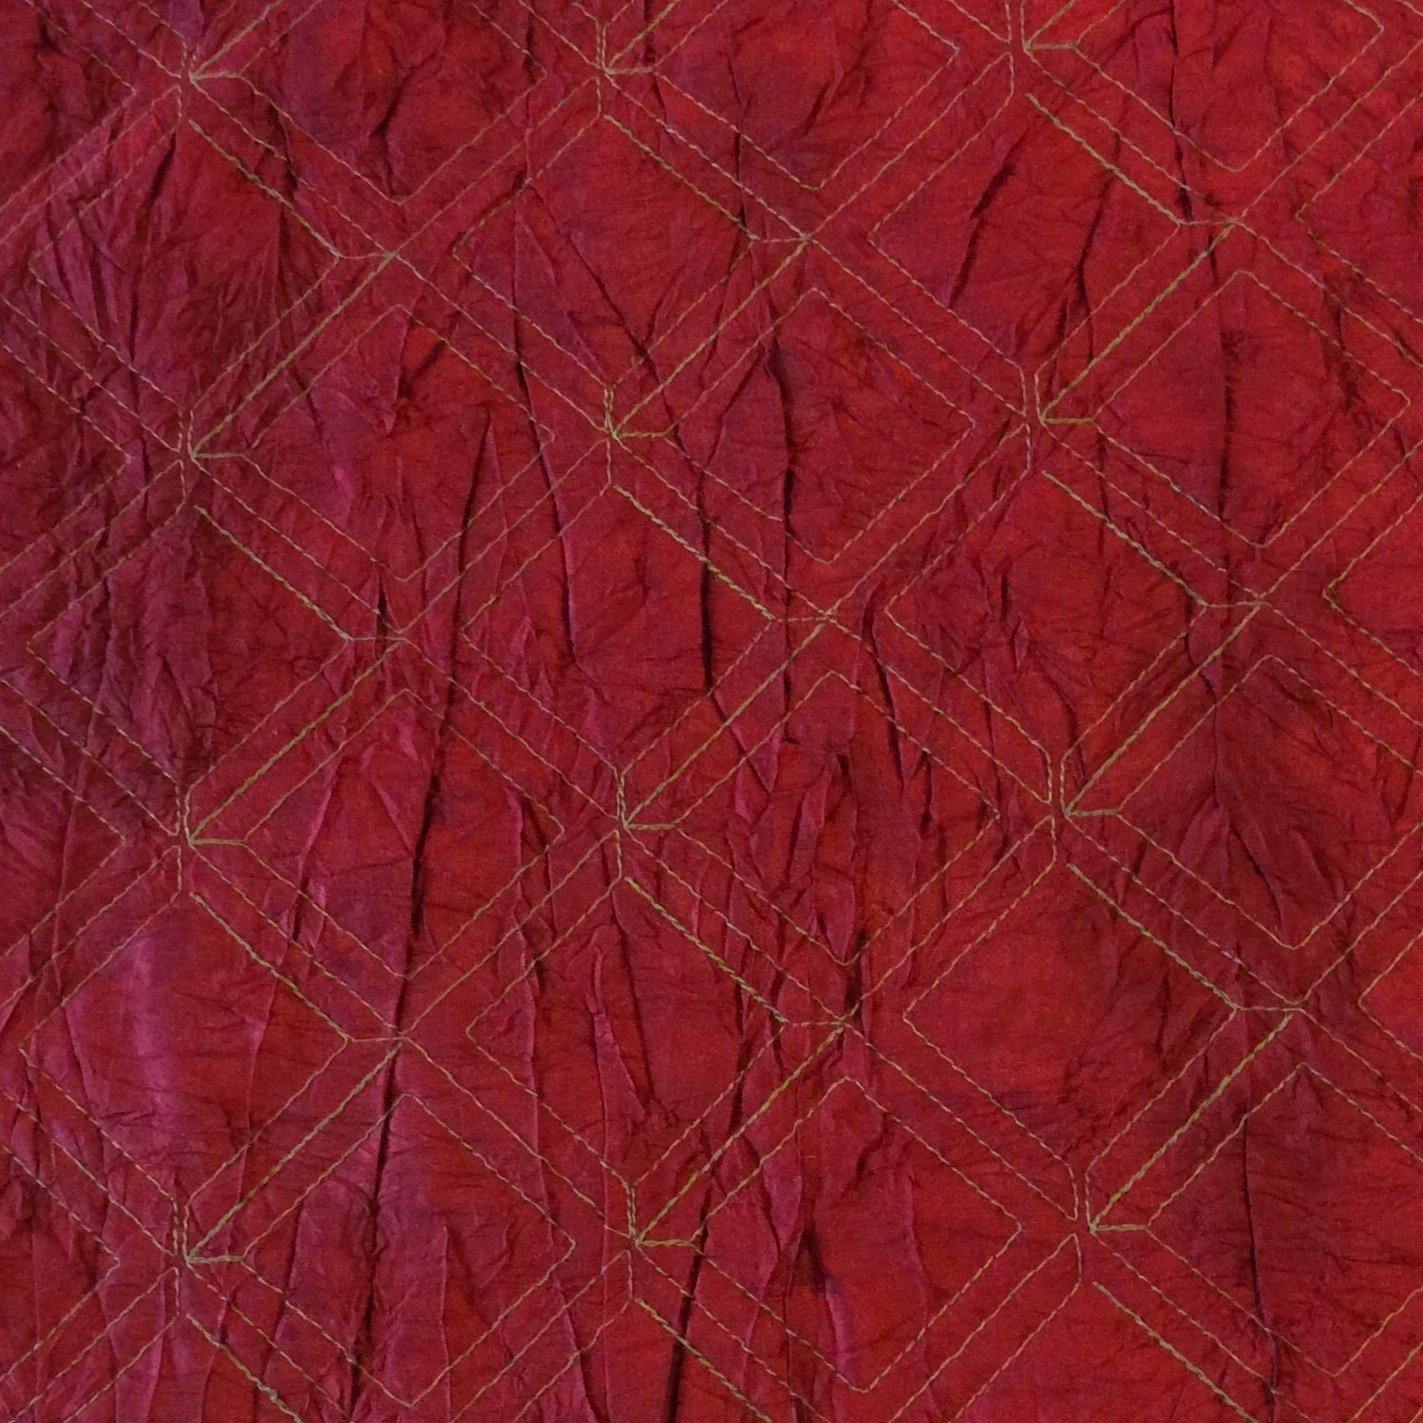 Red Diamond Stitched Quilted 100% Silk Fabric Home Dec Fabric NL025